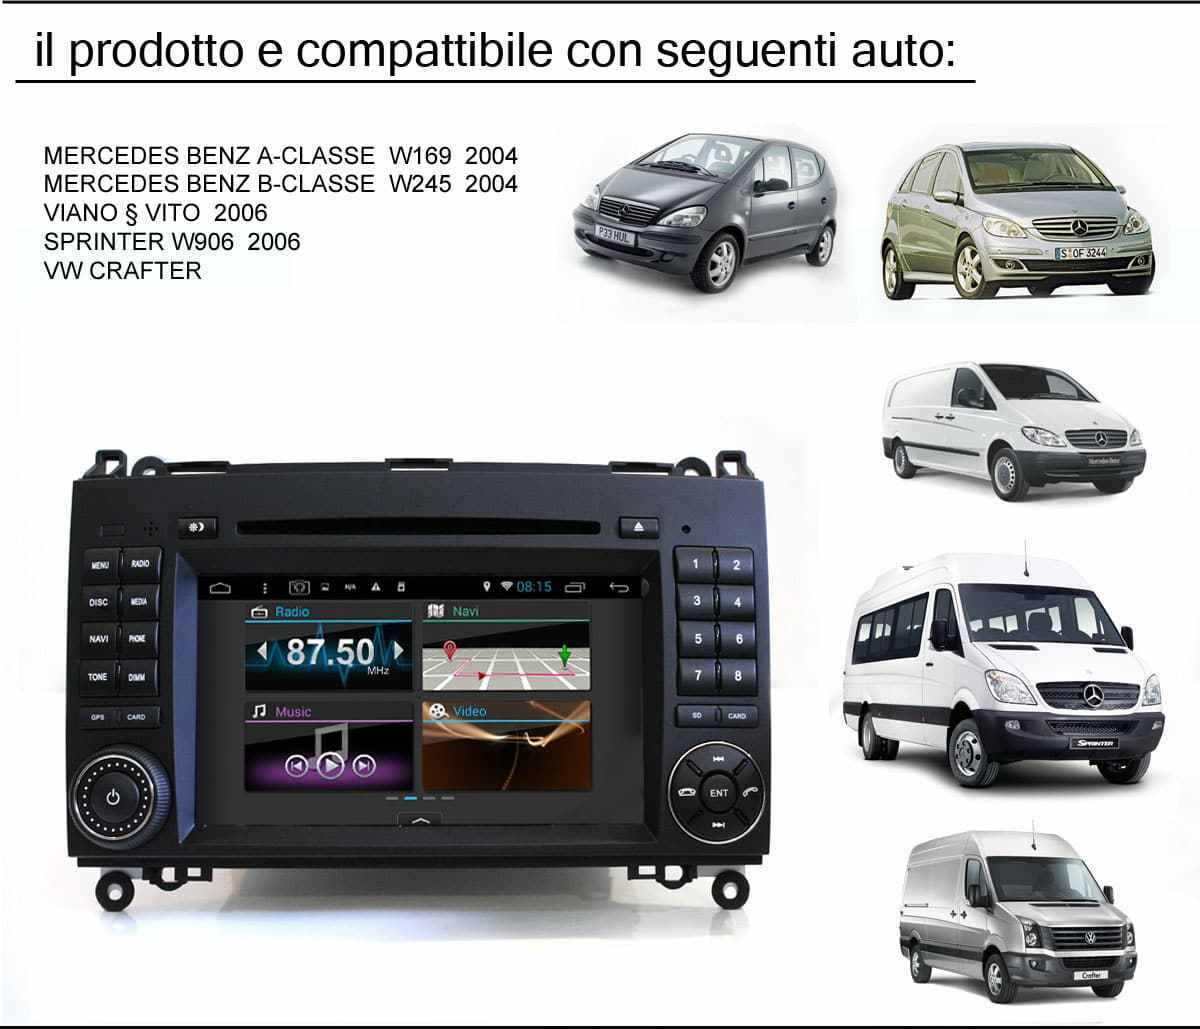 autoradio 2 din android touch dvd gps mercedes classe a b vito sprinter eur 469 00 picclick es. Black Bedroom Furniture Sets. Home Design Ideas